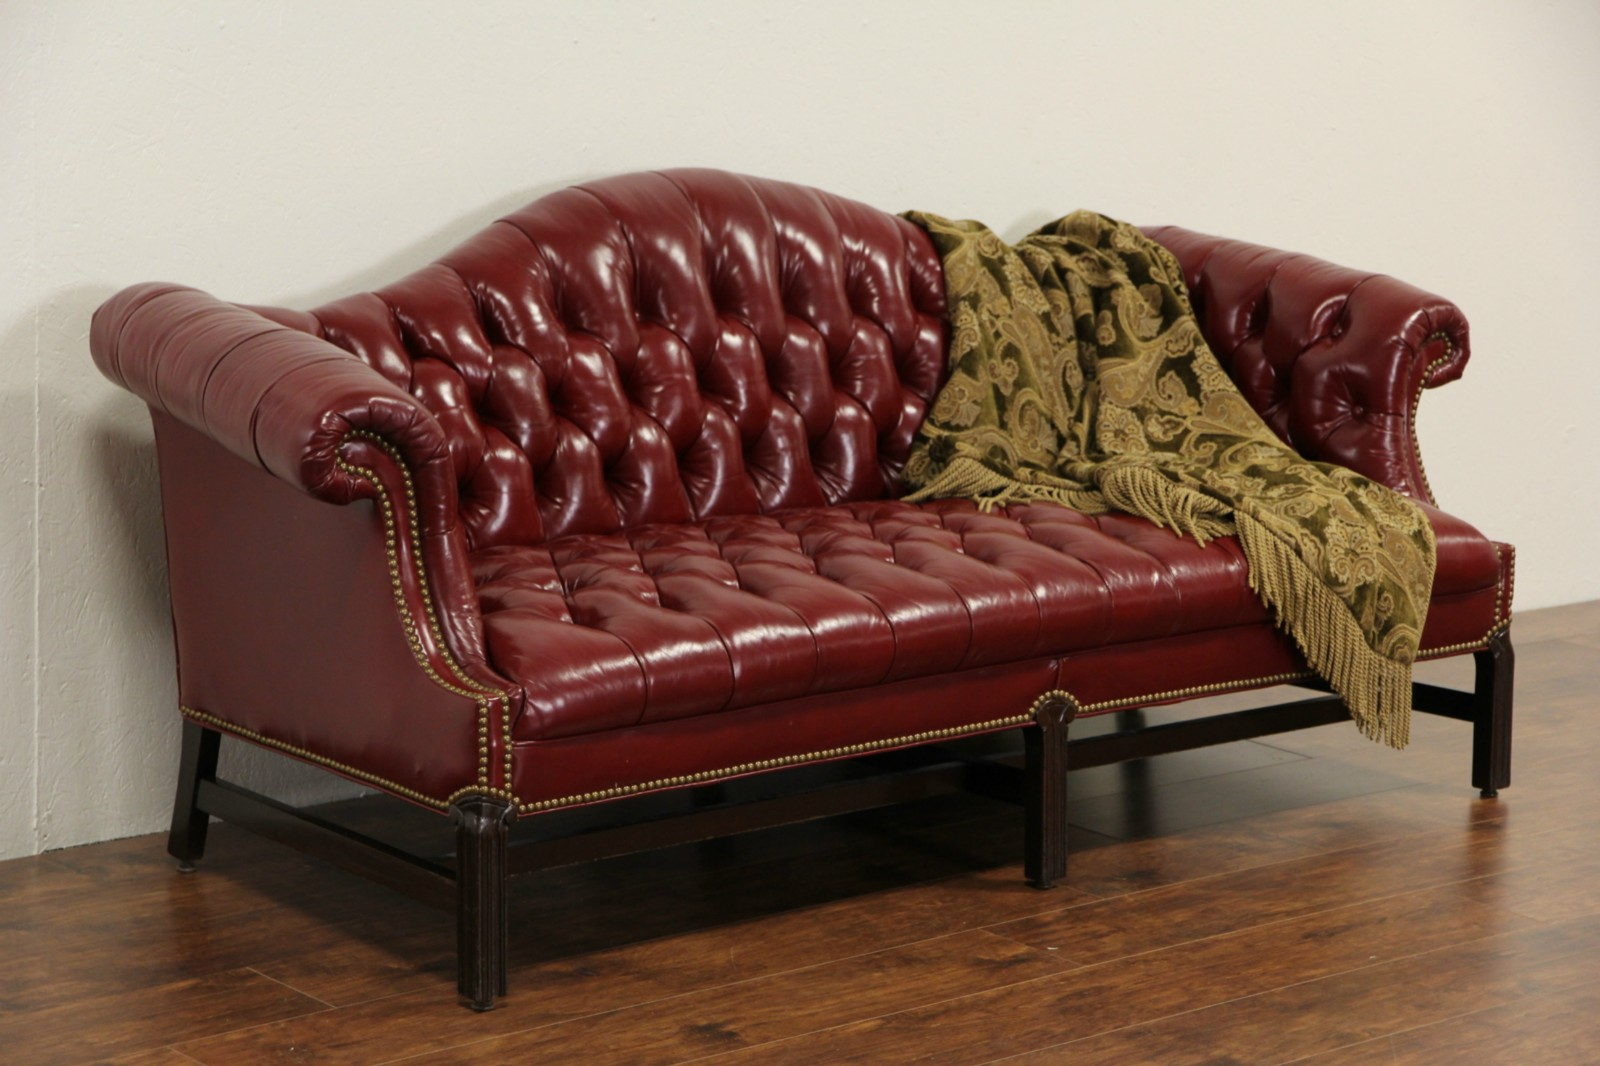 SOLD Red Leather Vintage Tufted Library Sofa Custom